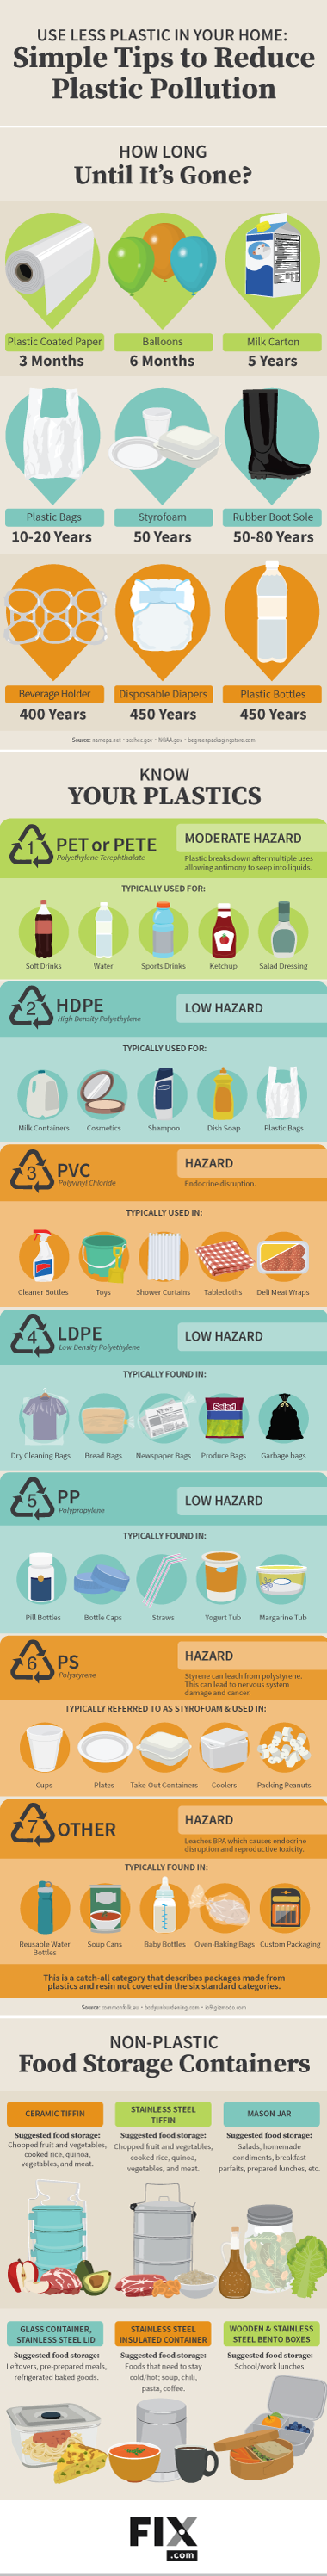 Use Less Plastic in Your Home: Simple Tips to Reduce Plastic Pollution #infographic